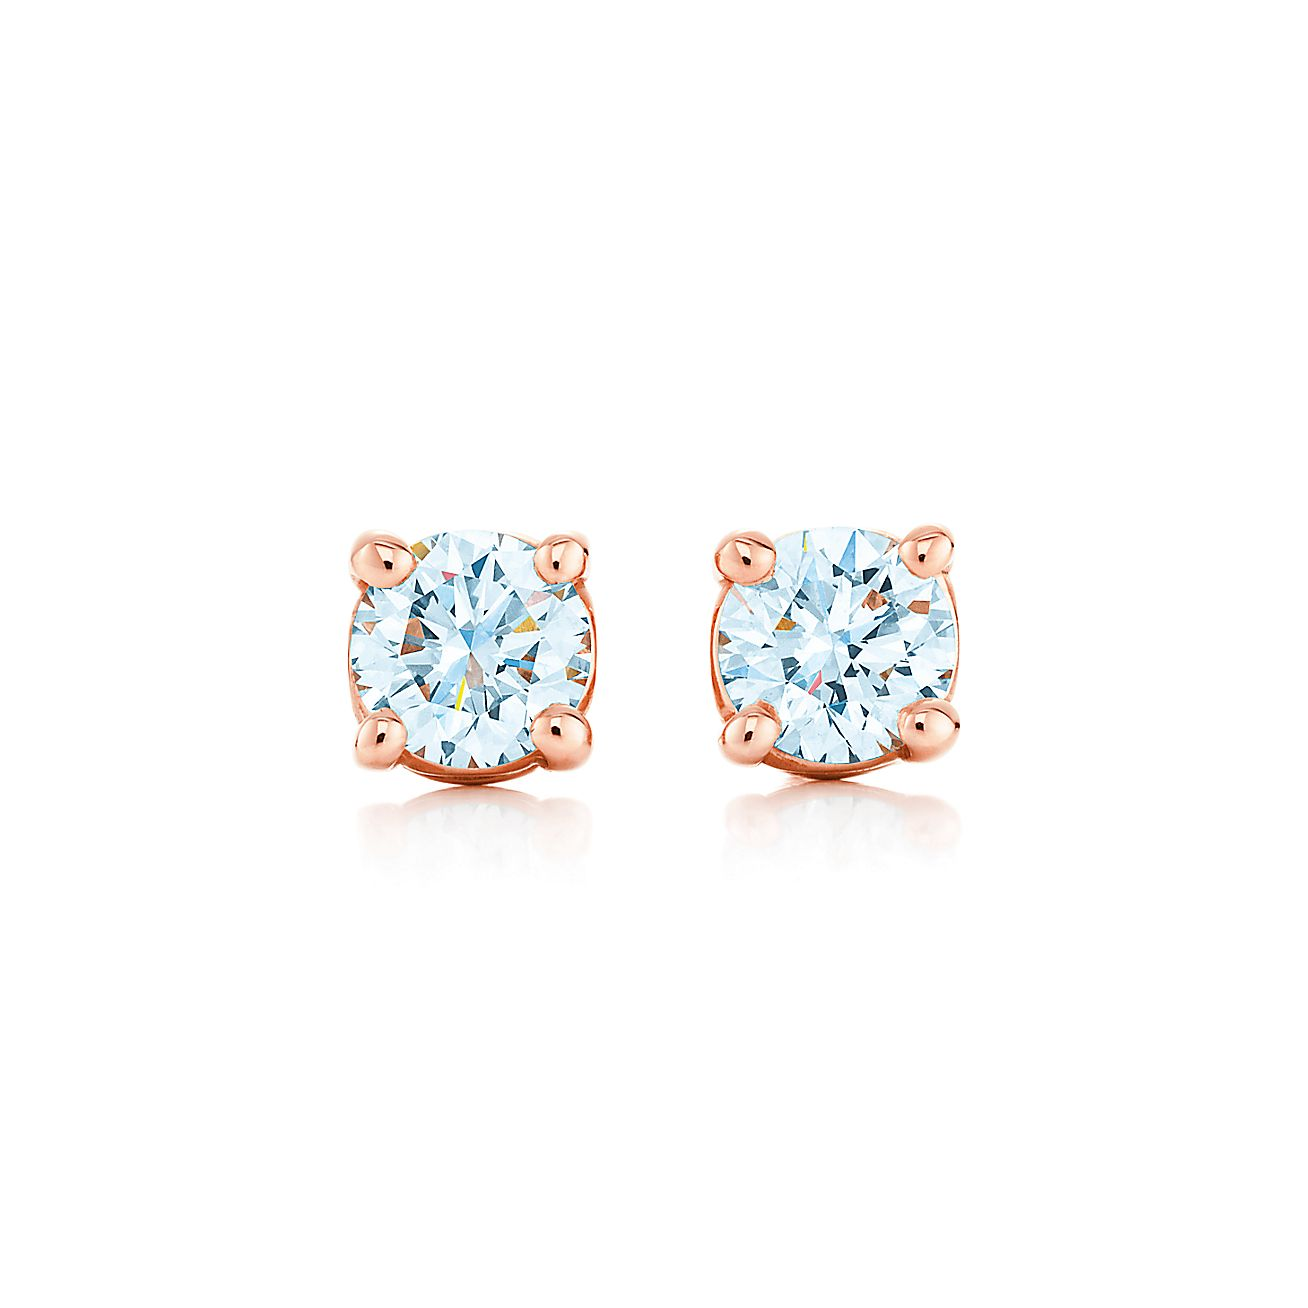 sk intertwine earings earrings singapore catalog products love diamond lazada jewellery